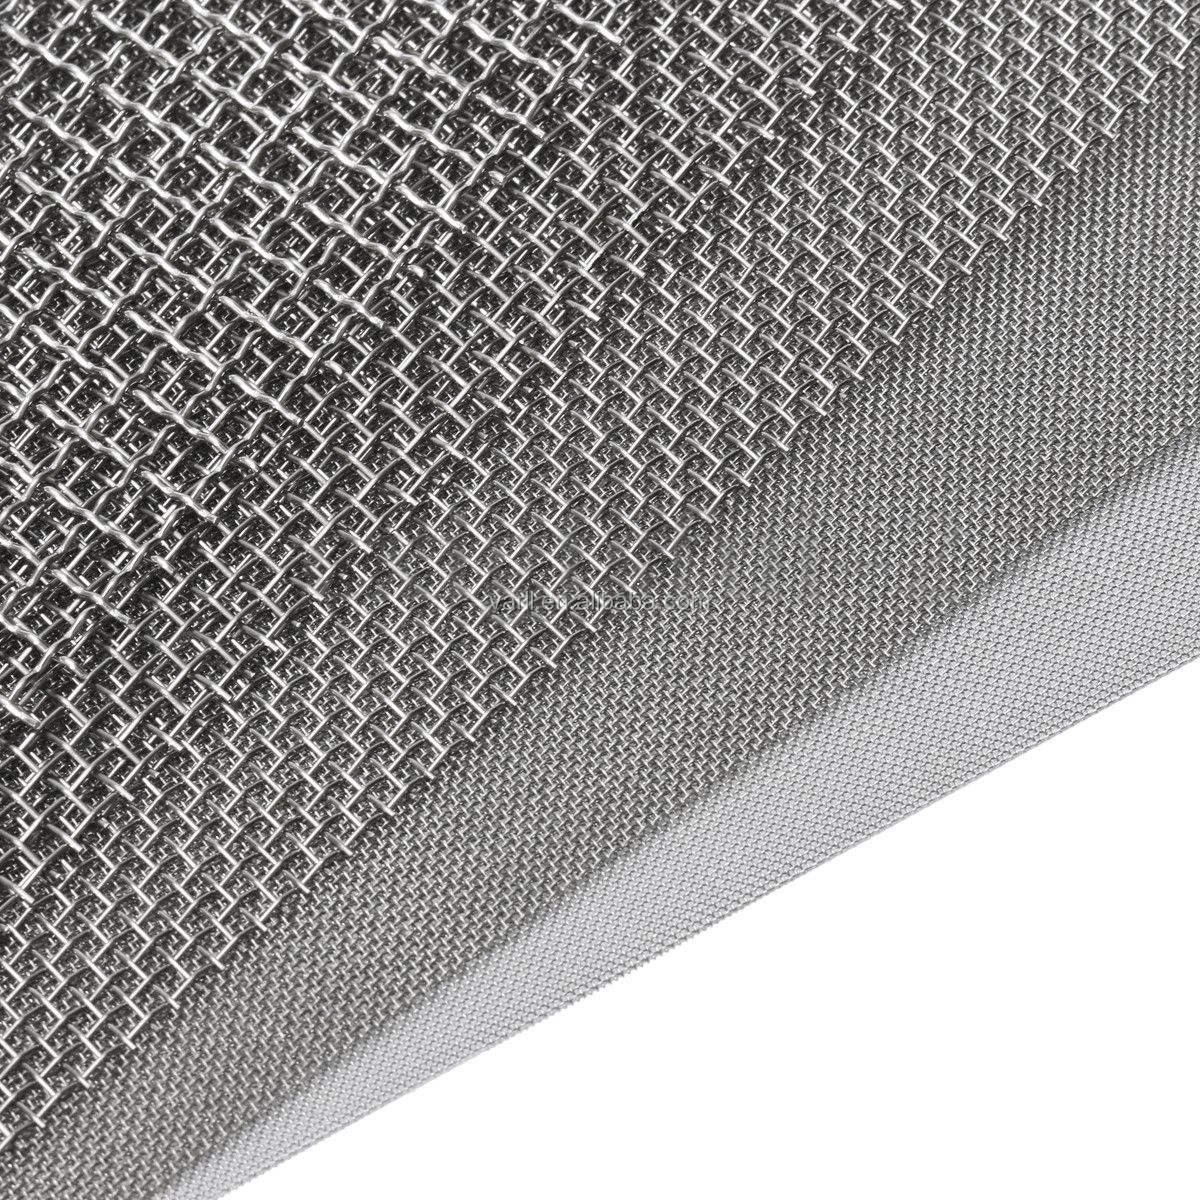 High quality super fine iron wire mesh 20 30 50 100 mesh stainless steel wire mesh